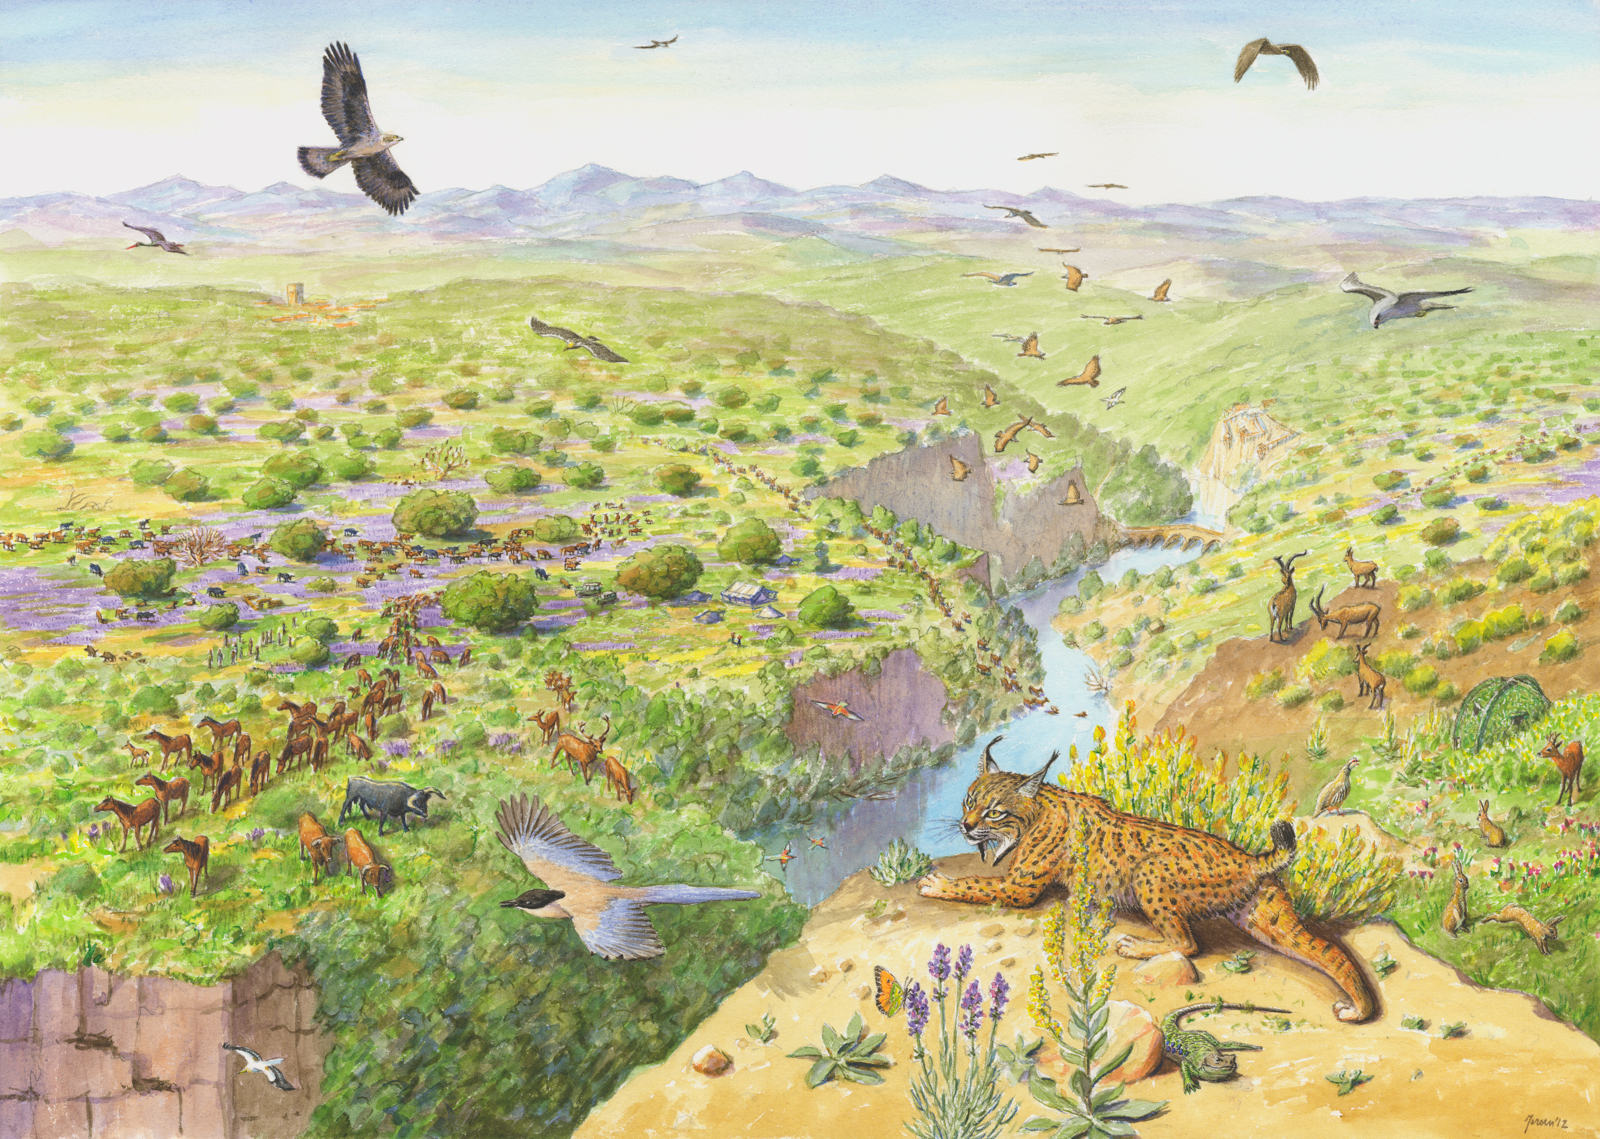 Artist's vision of the Western Iberia rewilding area.